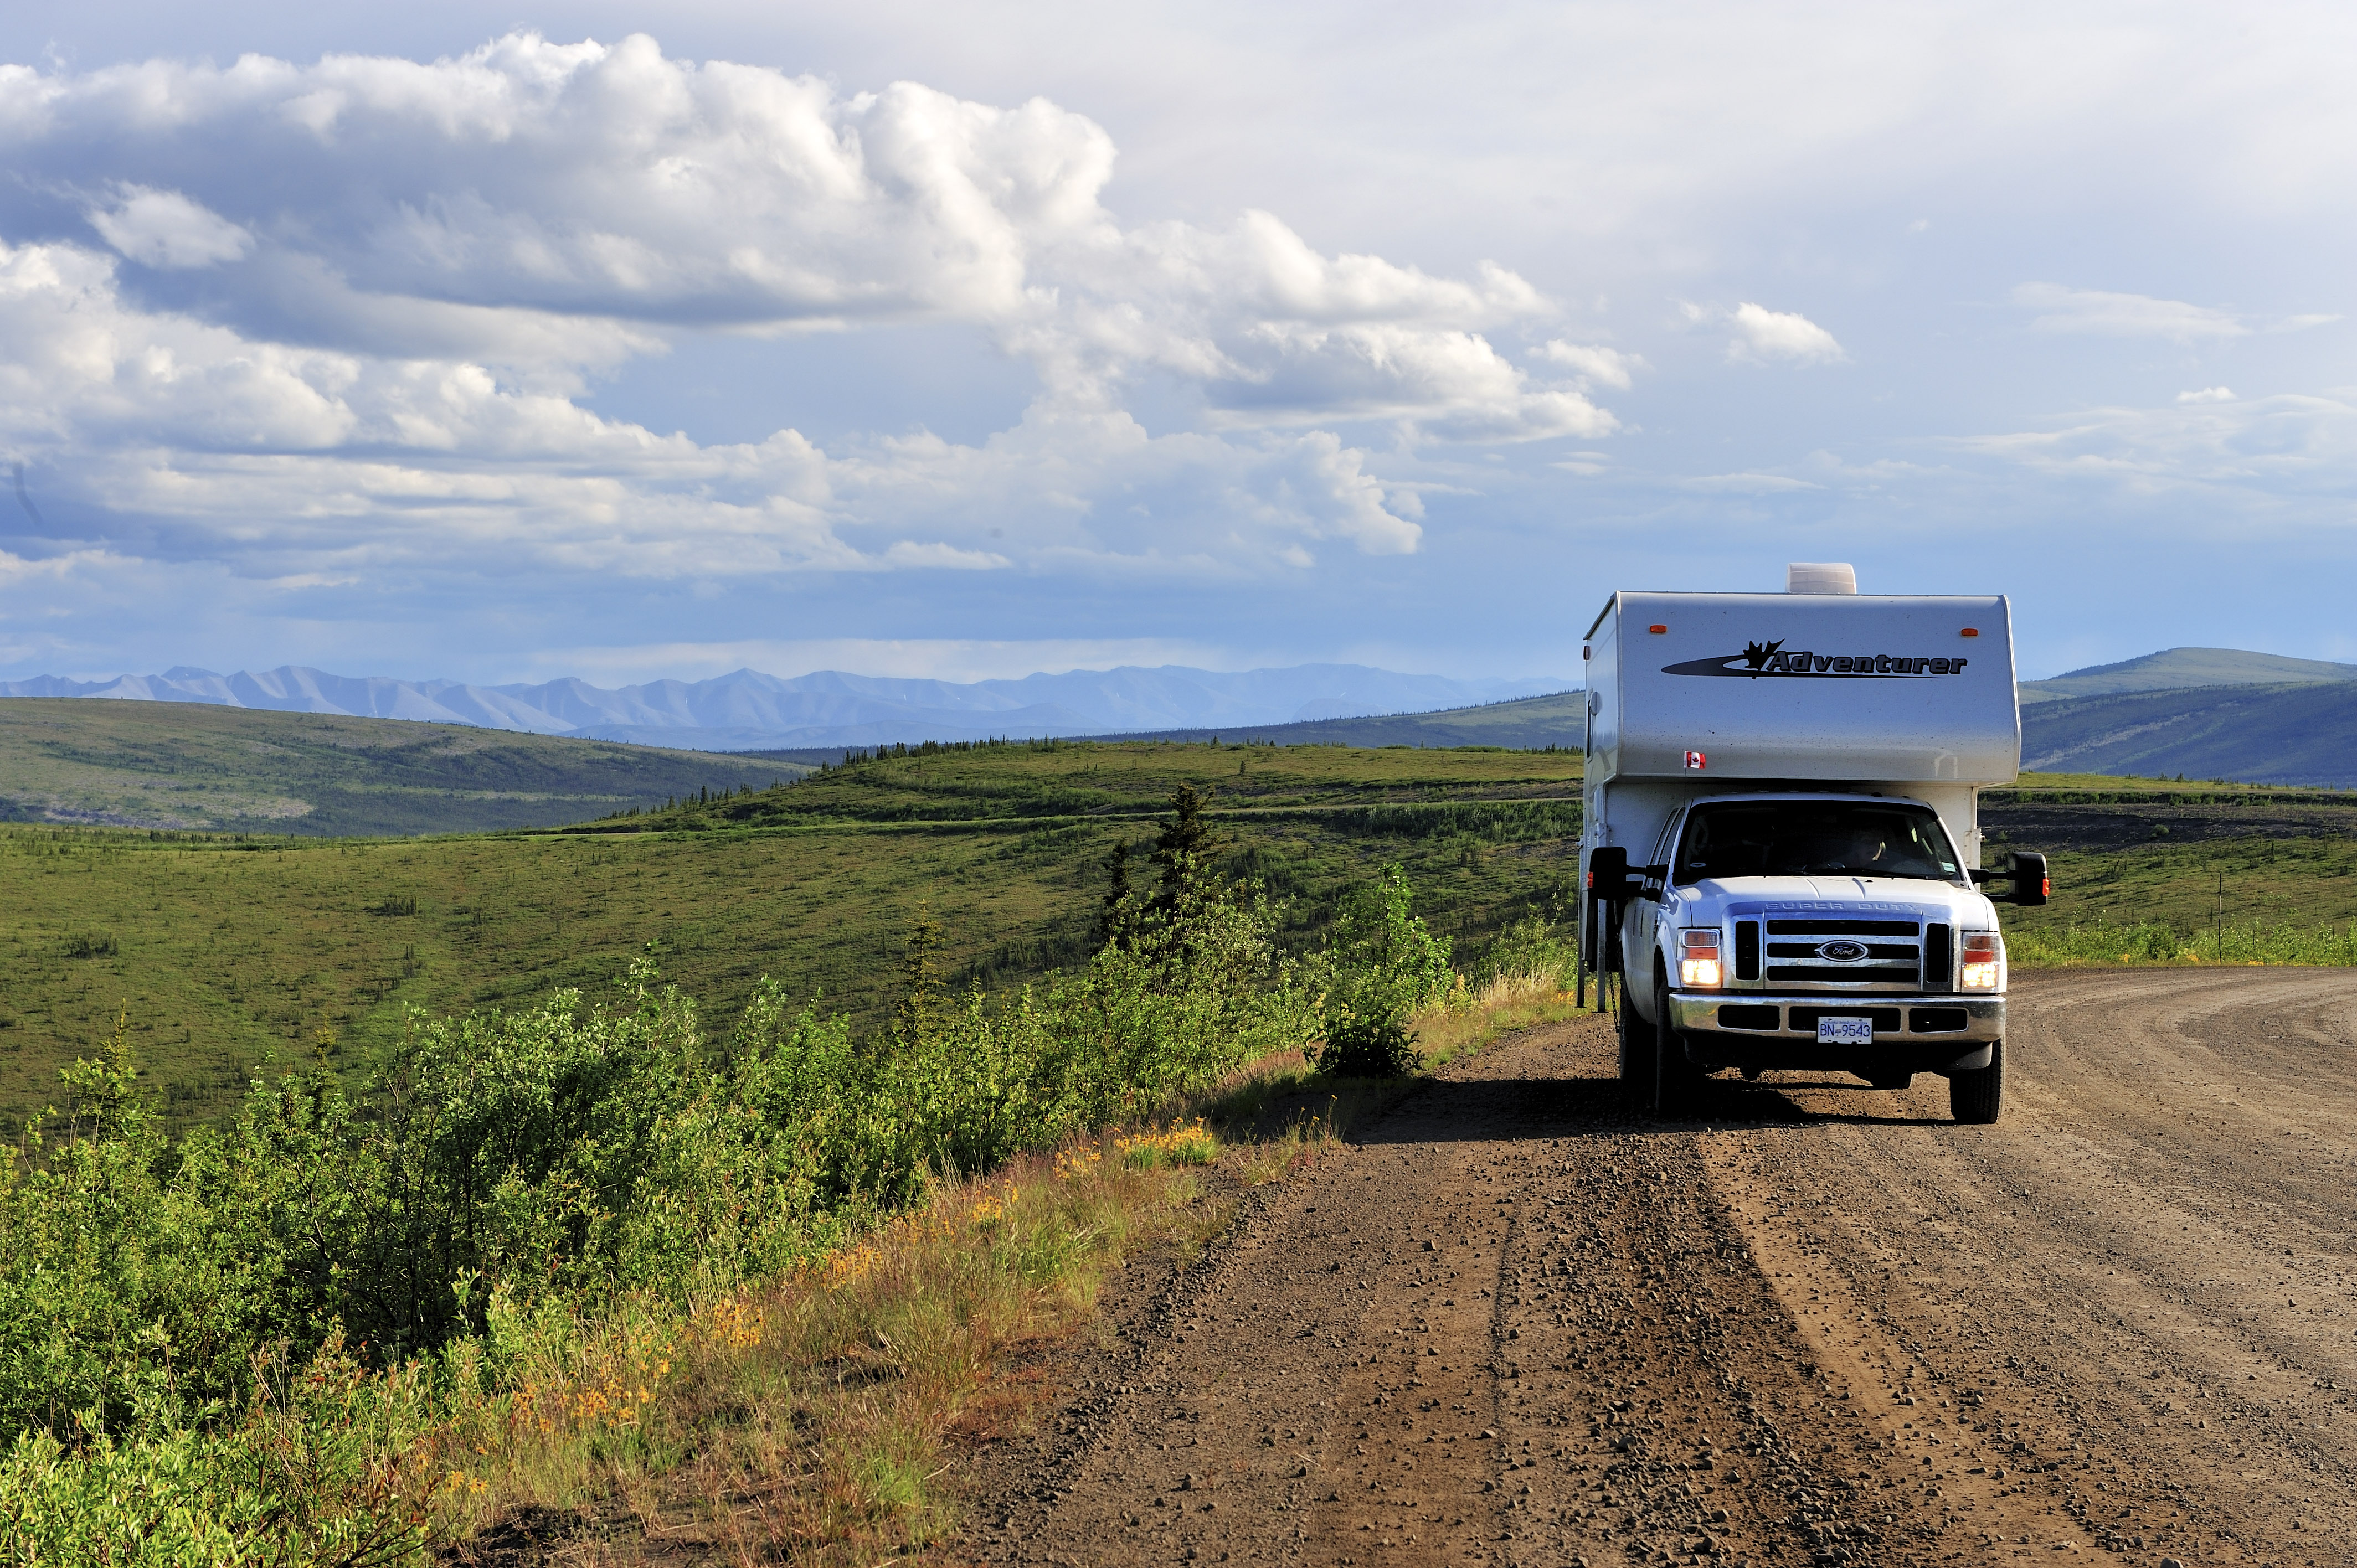 Touring - Dempster Highway